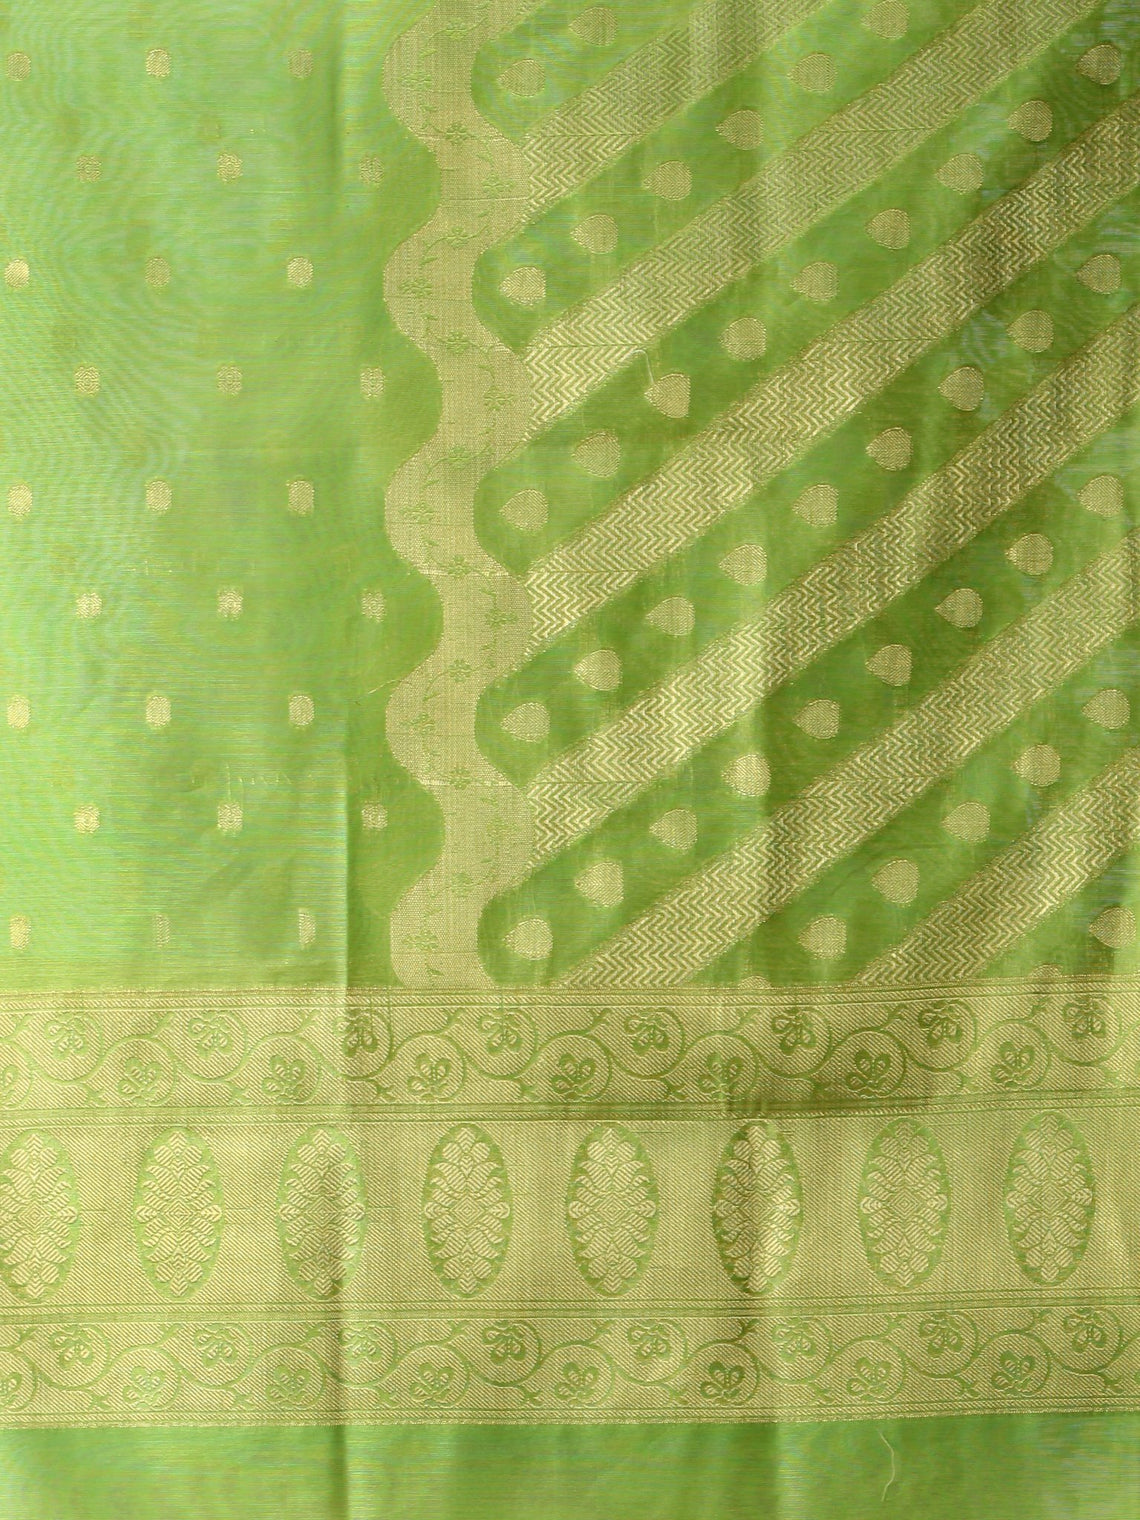 Banarasi Chanderi Dupatta With Zari Work - Light Green & Gold - D04170842